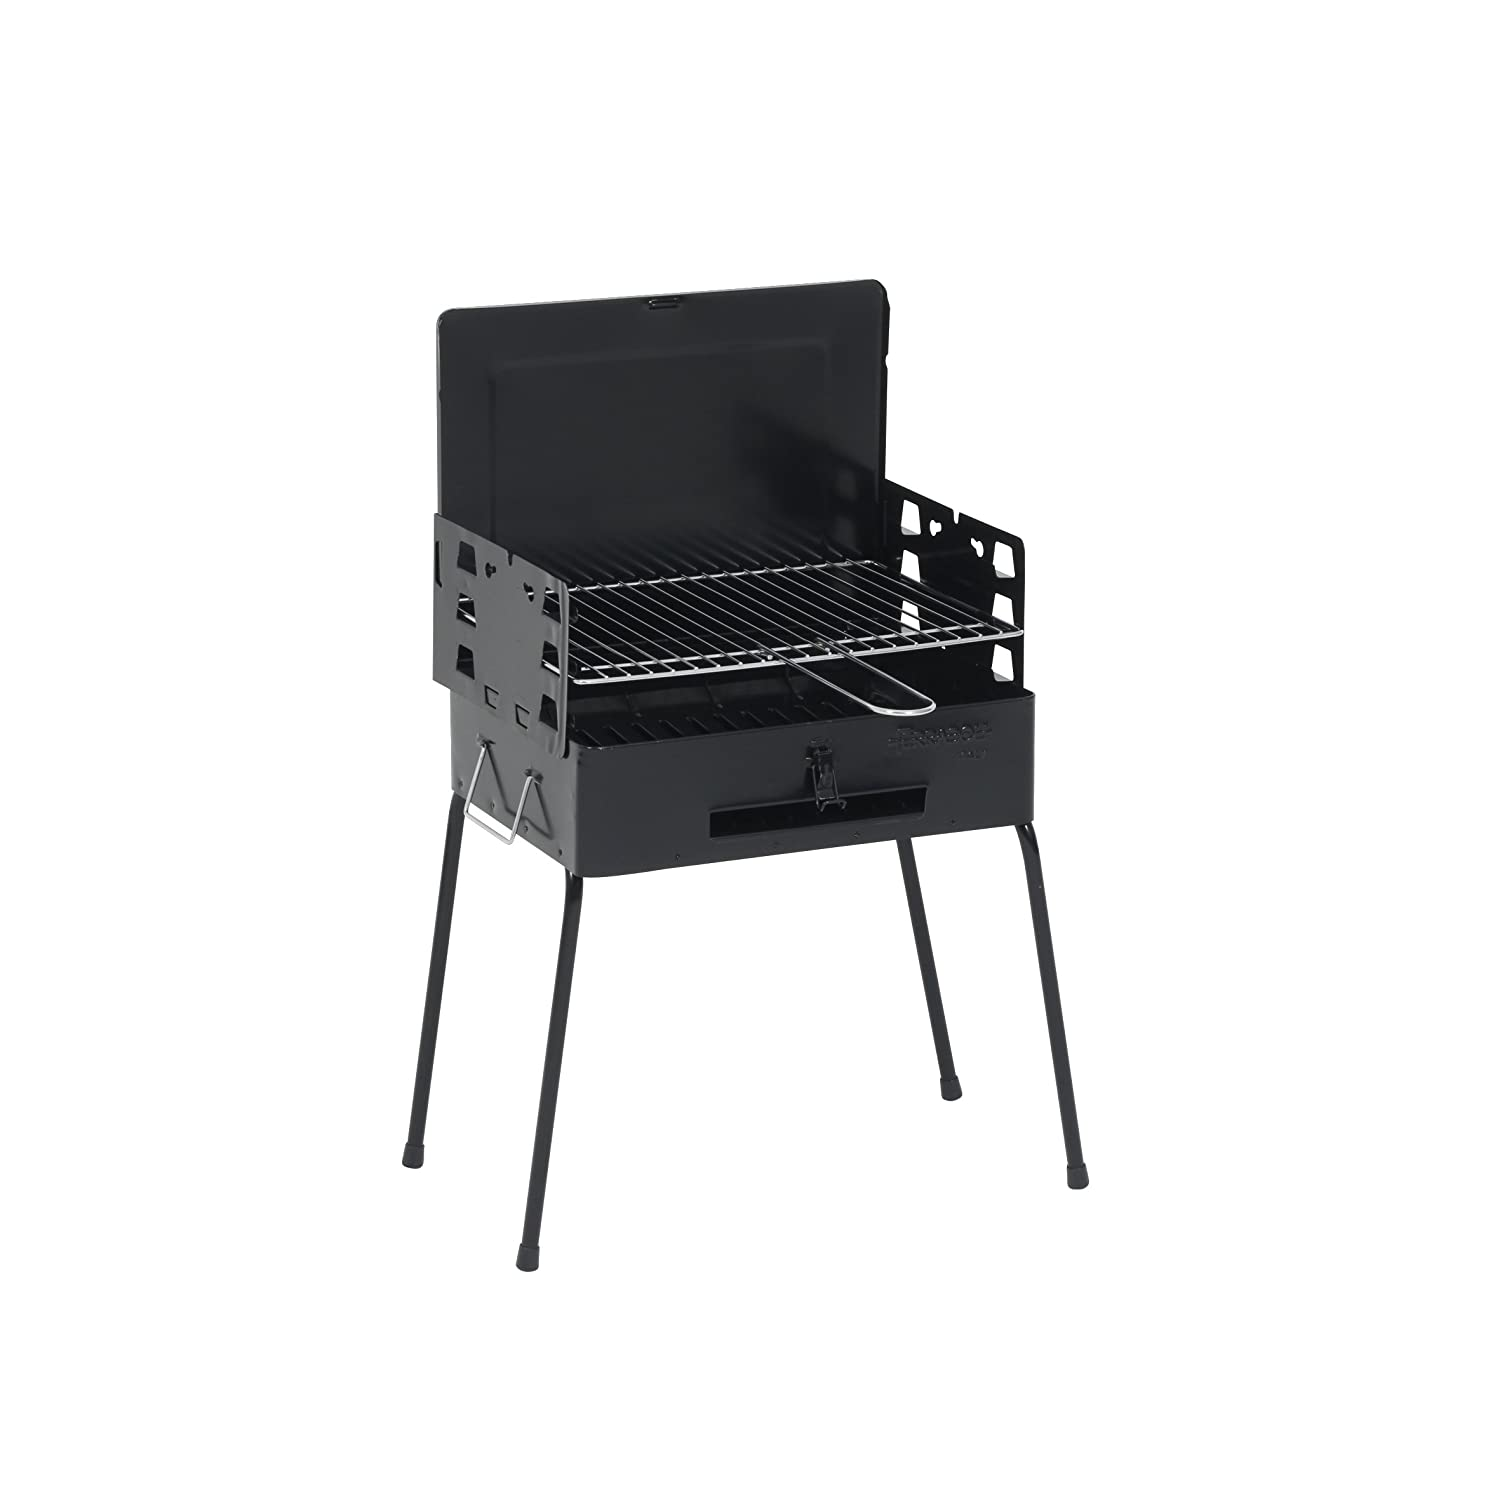 Kamino-Flam case, full set small folding BBQ/charcoal lighter/picnic barbecue, space-saving folding portable charcoal barbecue grill with adjustable rack, sheet steel, party to go Kamino Flam 129157